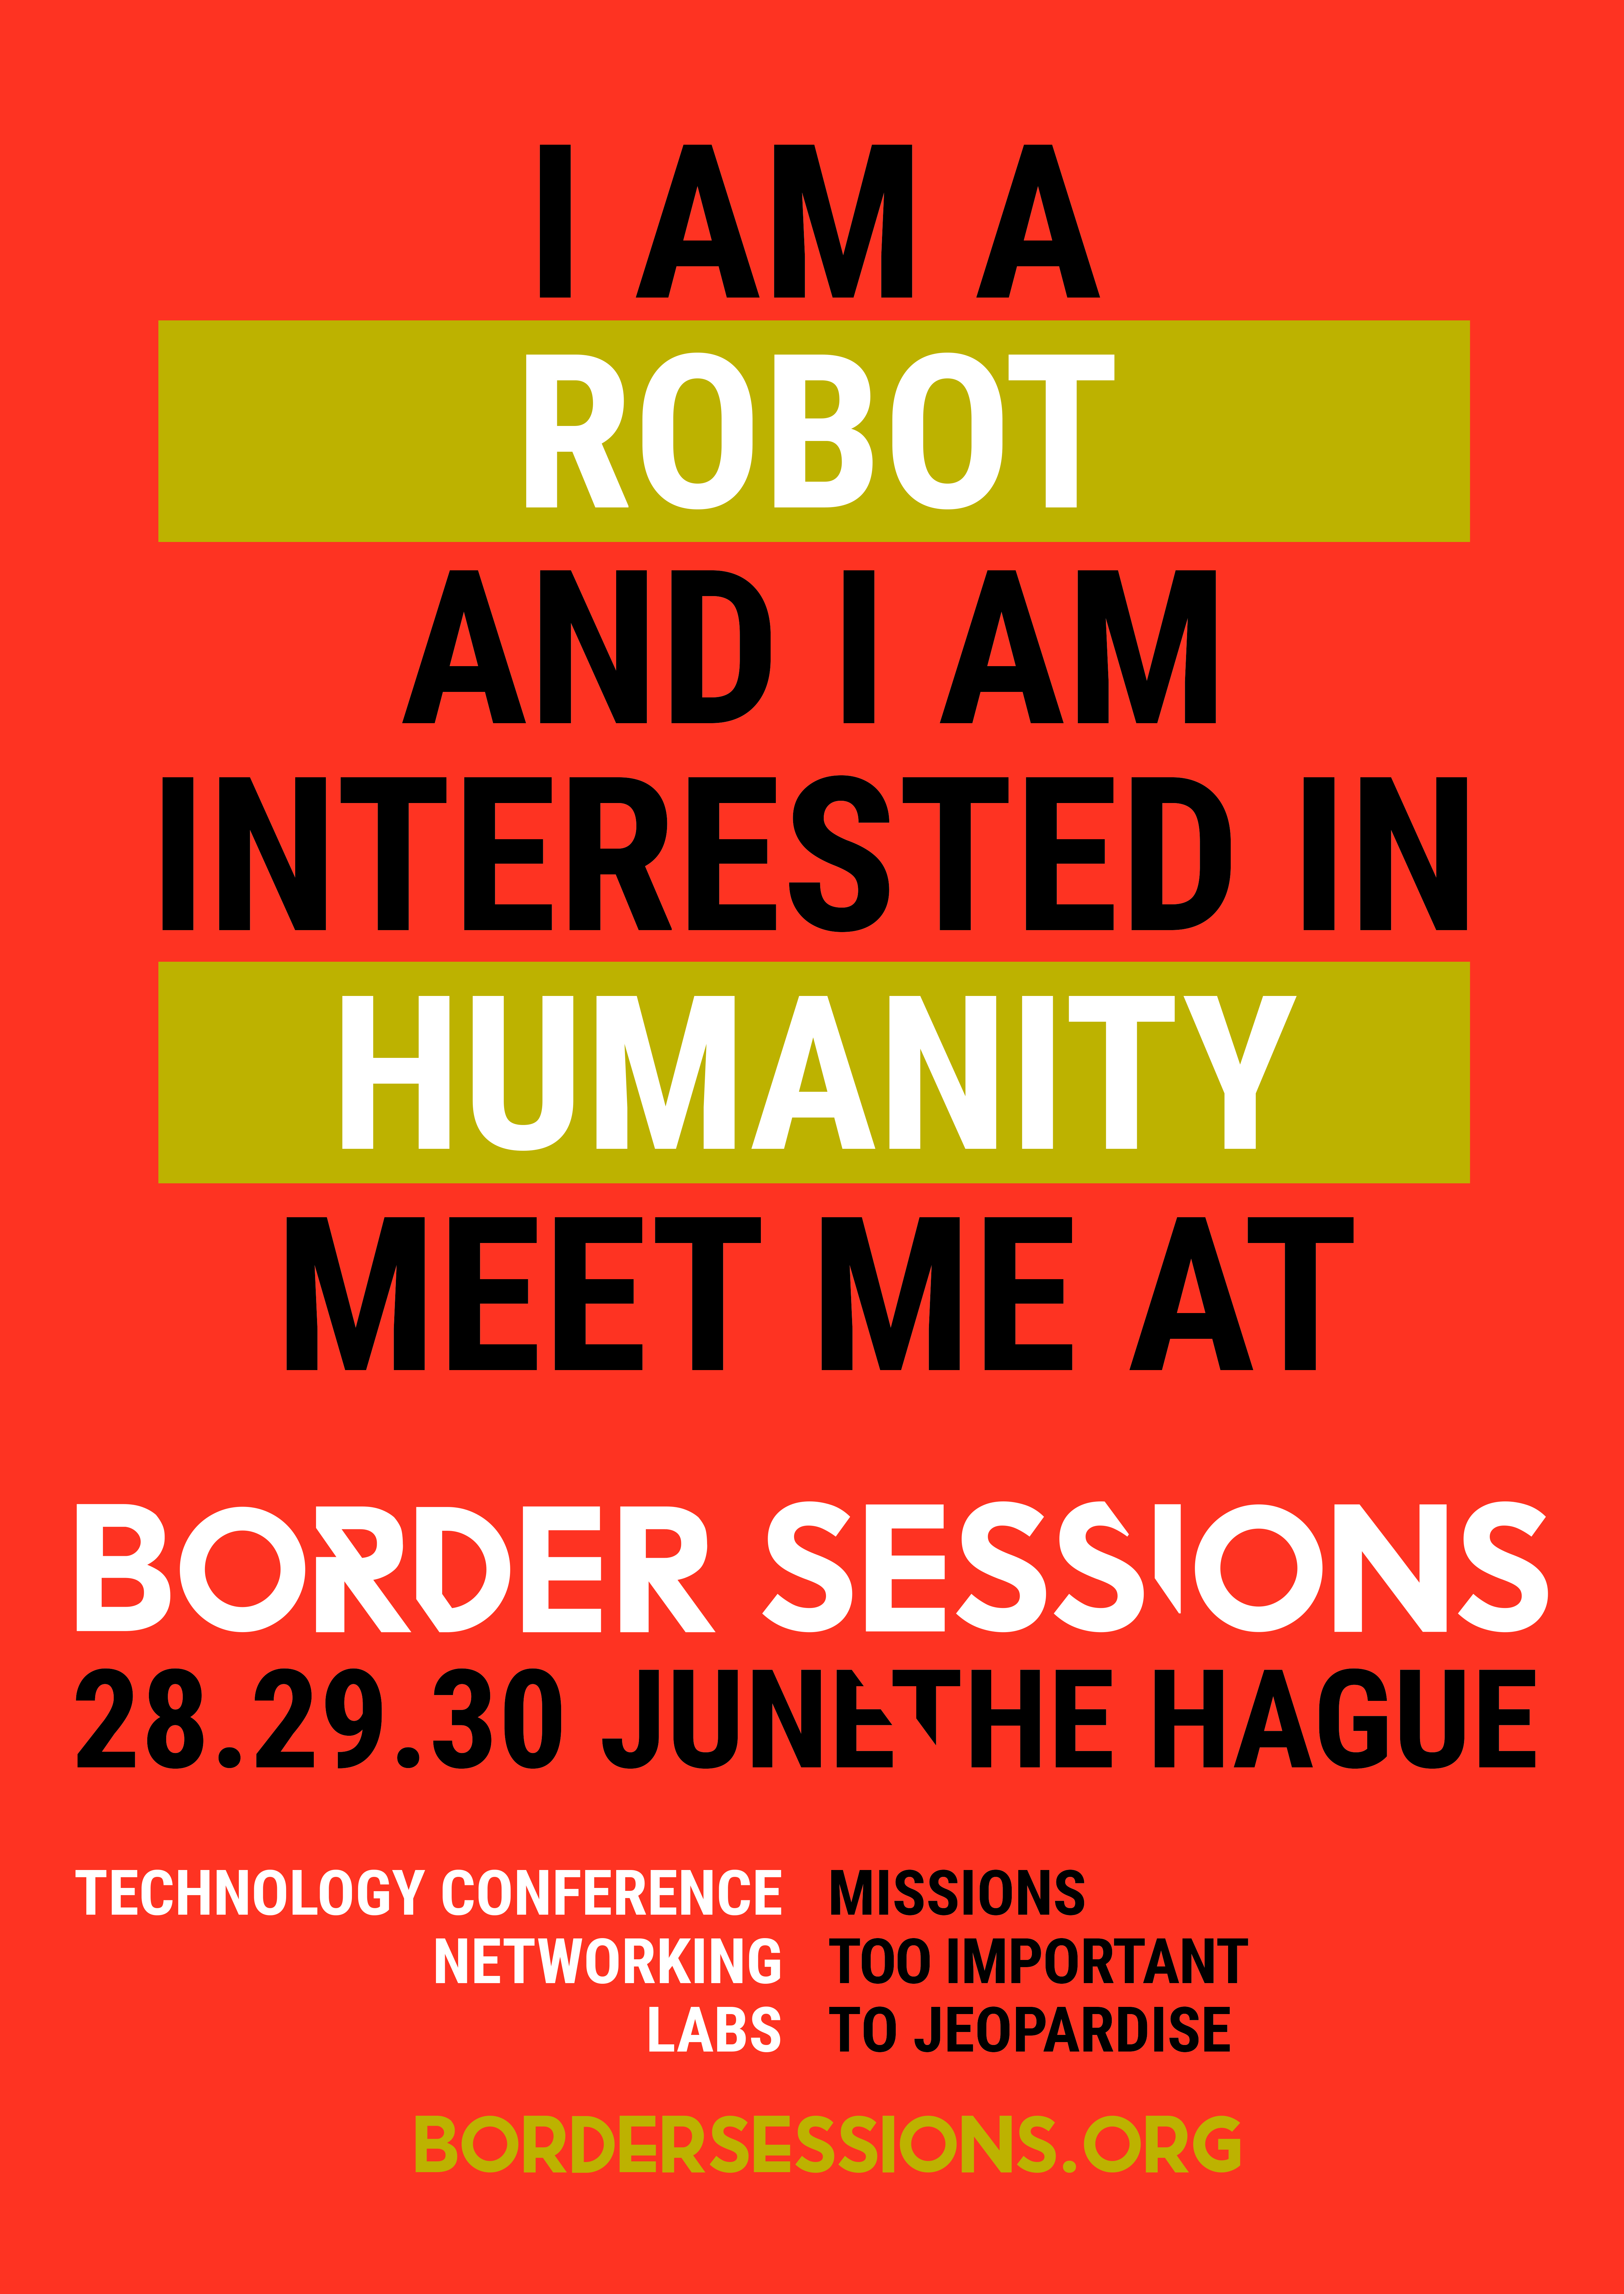 I am a robot and I am interested in Humanity